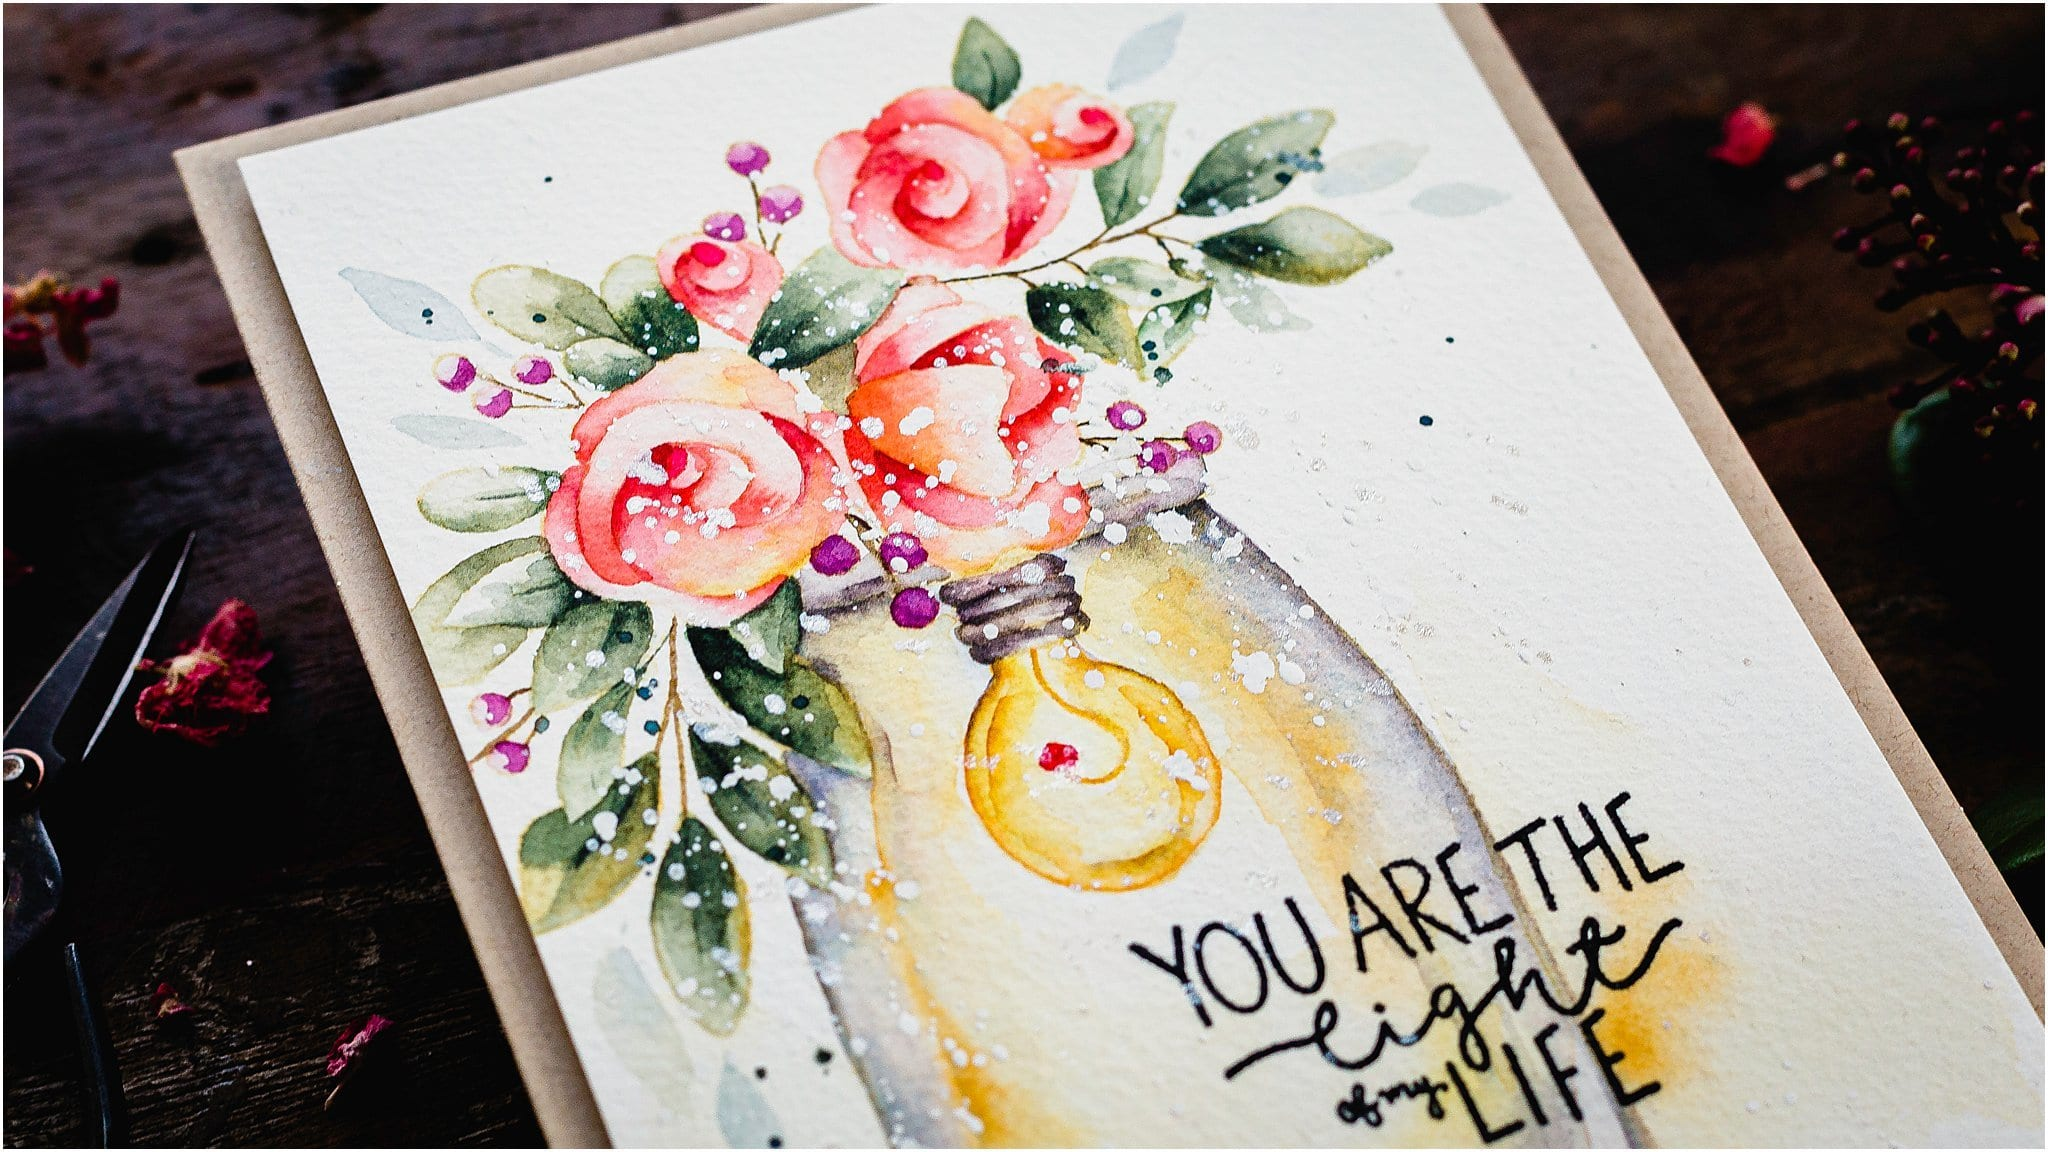 Video tutorial on how to watercolour glass on this handmade card by Debby Hughes with both a glass jar and a glass lightbulb to think about! #handmadecards #cardmaking #cardmakingideas #cardmakingtechniques  #cardmakingtutorials #handmadecardideas